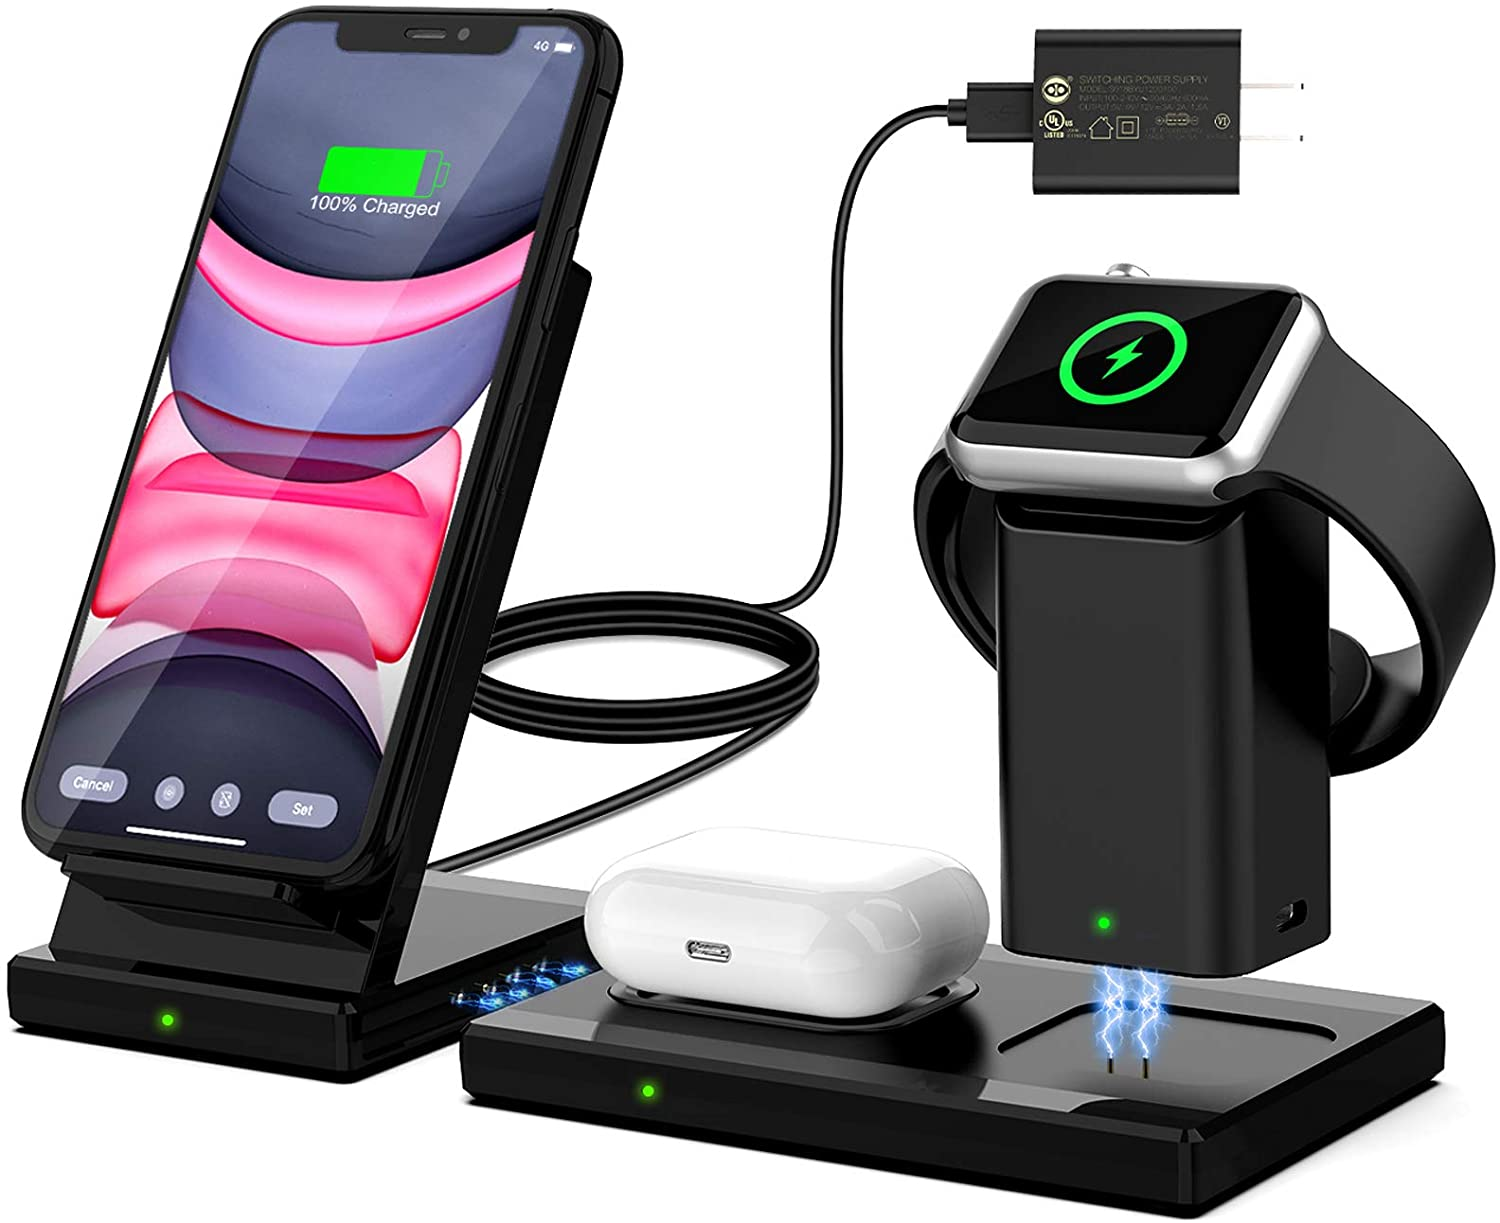 WisFox 3 in 1 Qi-Certified Wireless Charging Station